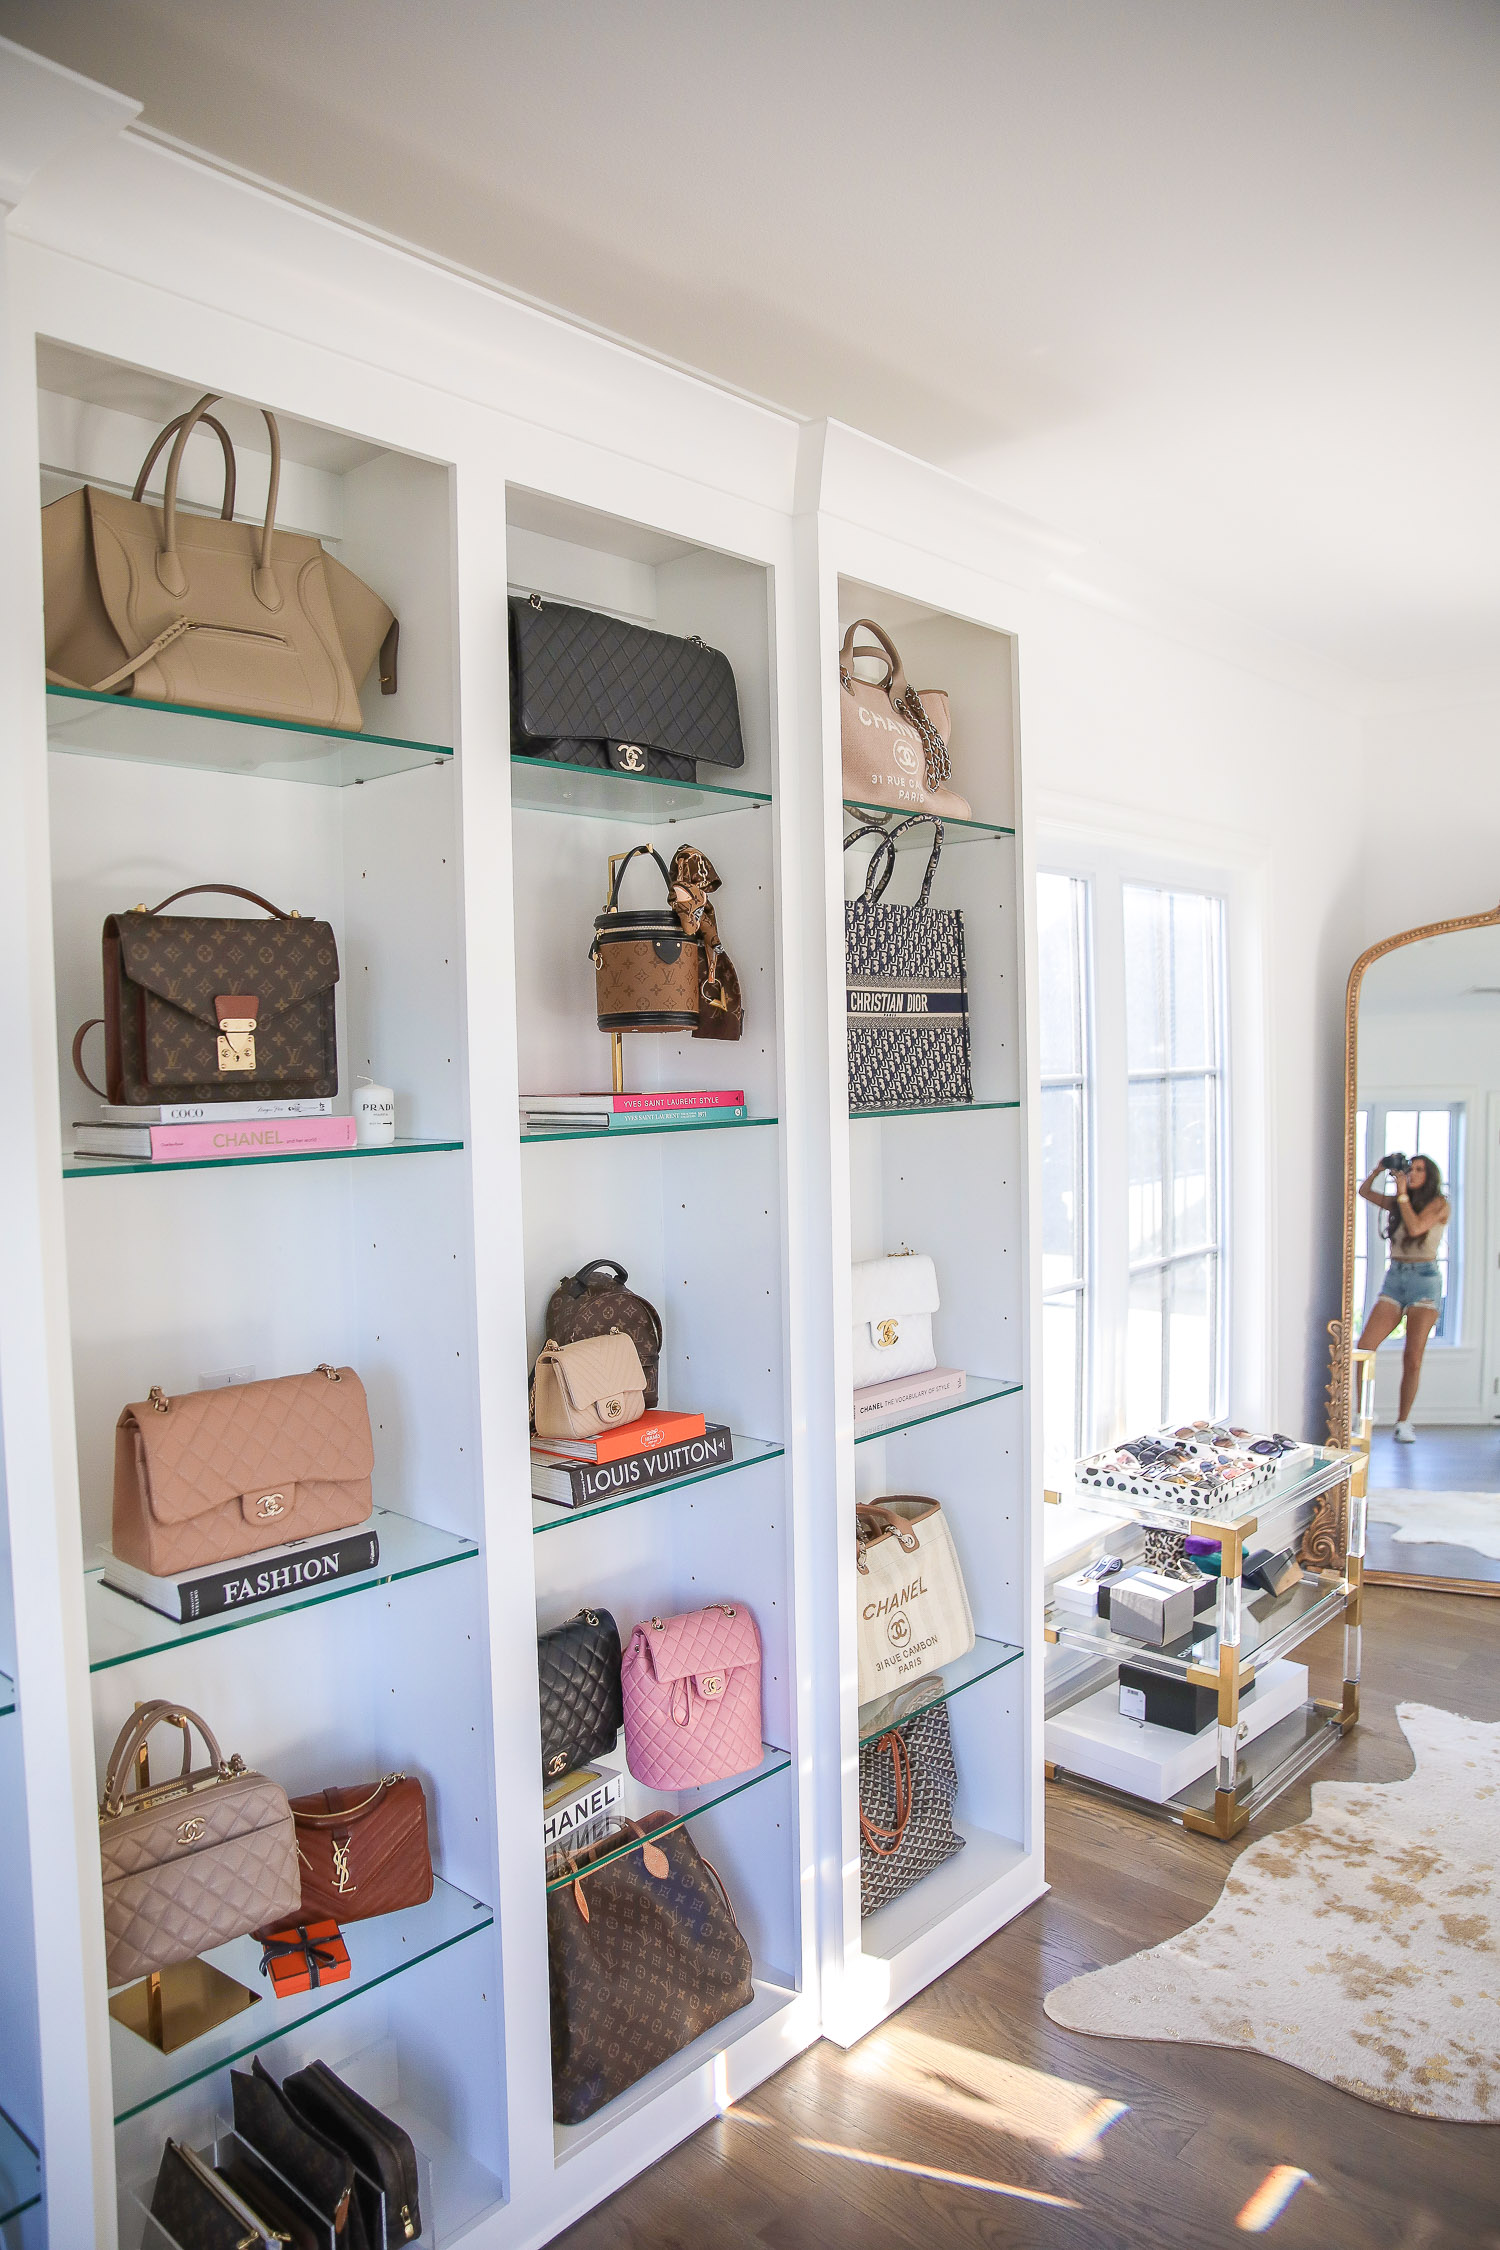 amazon must haves summer 2020, amazon home decor blog post, amazon luxury must haves, two story closet pinterest, emily gemma, closet organization | Amazon Favorites by popular US life and style blog, The Sweetest Thing: image of various designer purses, a gold hat stand, and various coffee table fashion books.